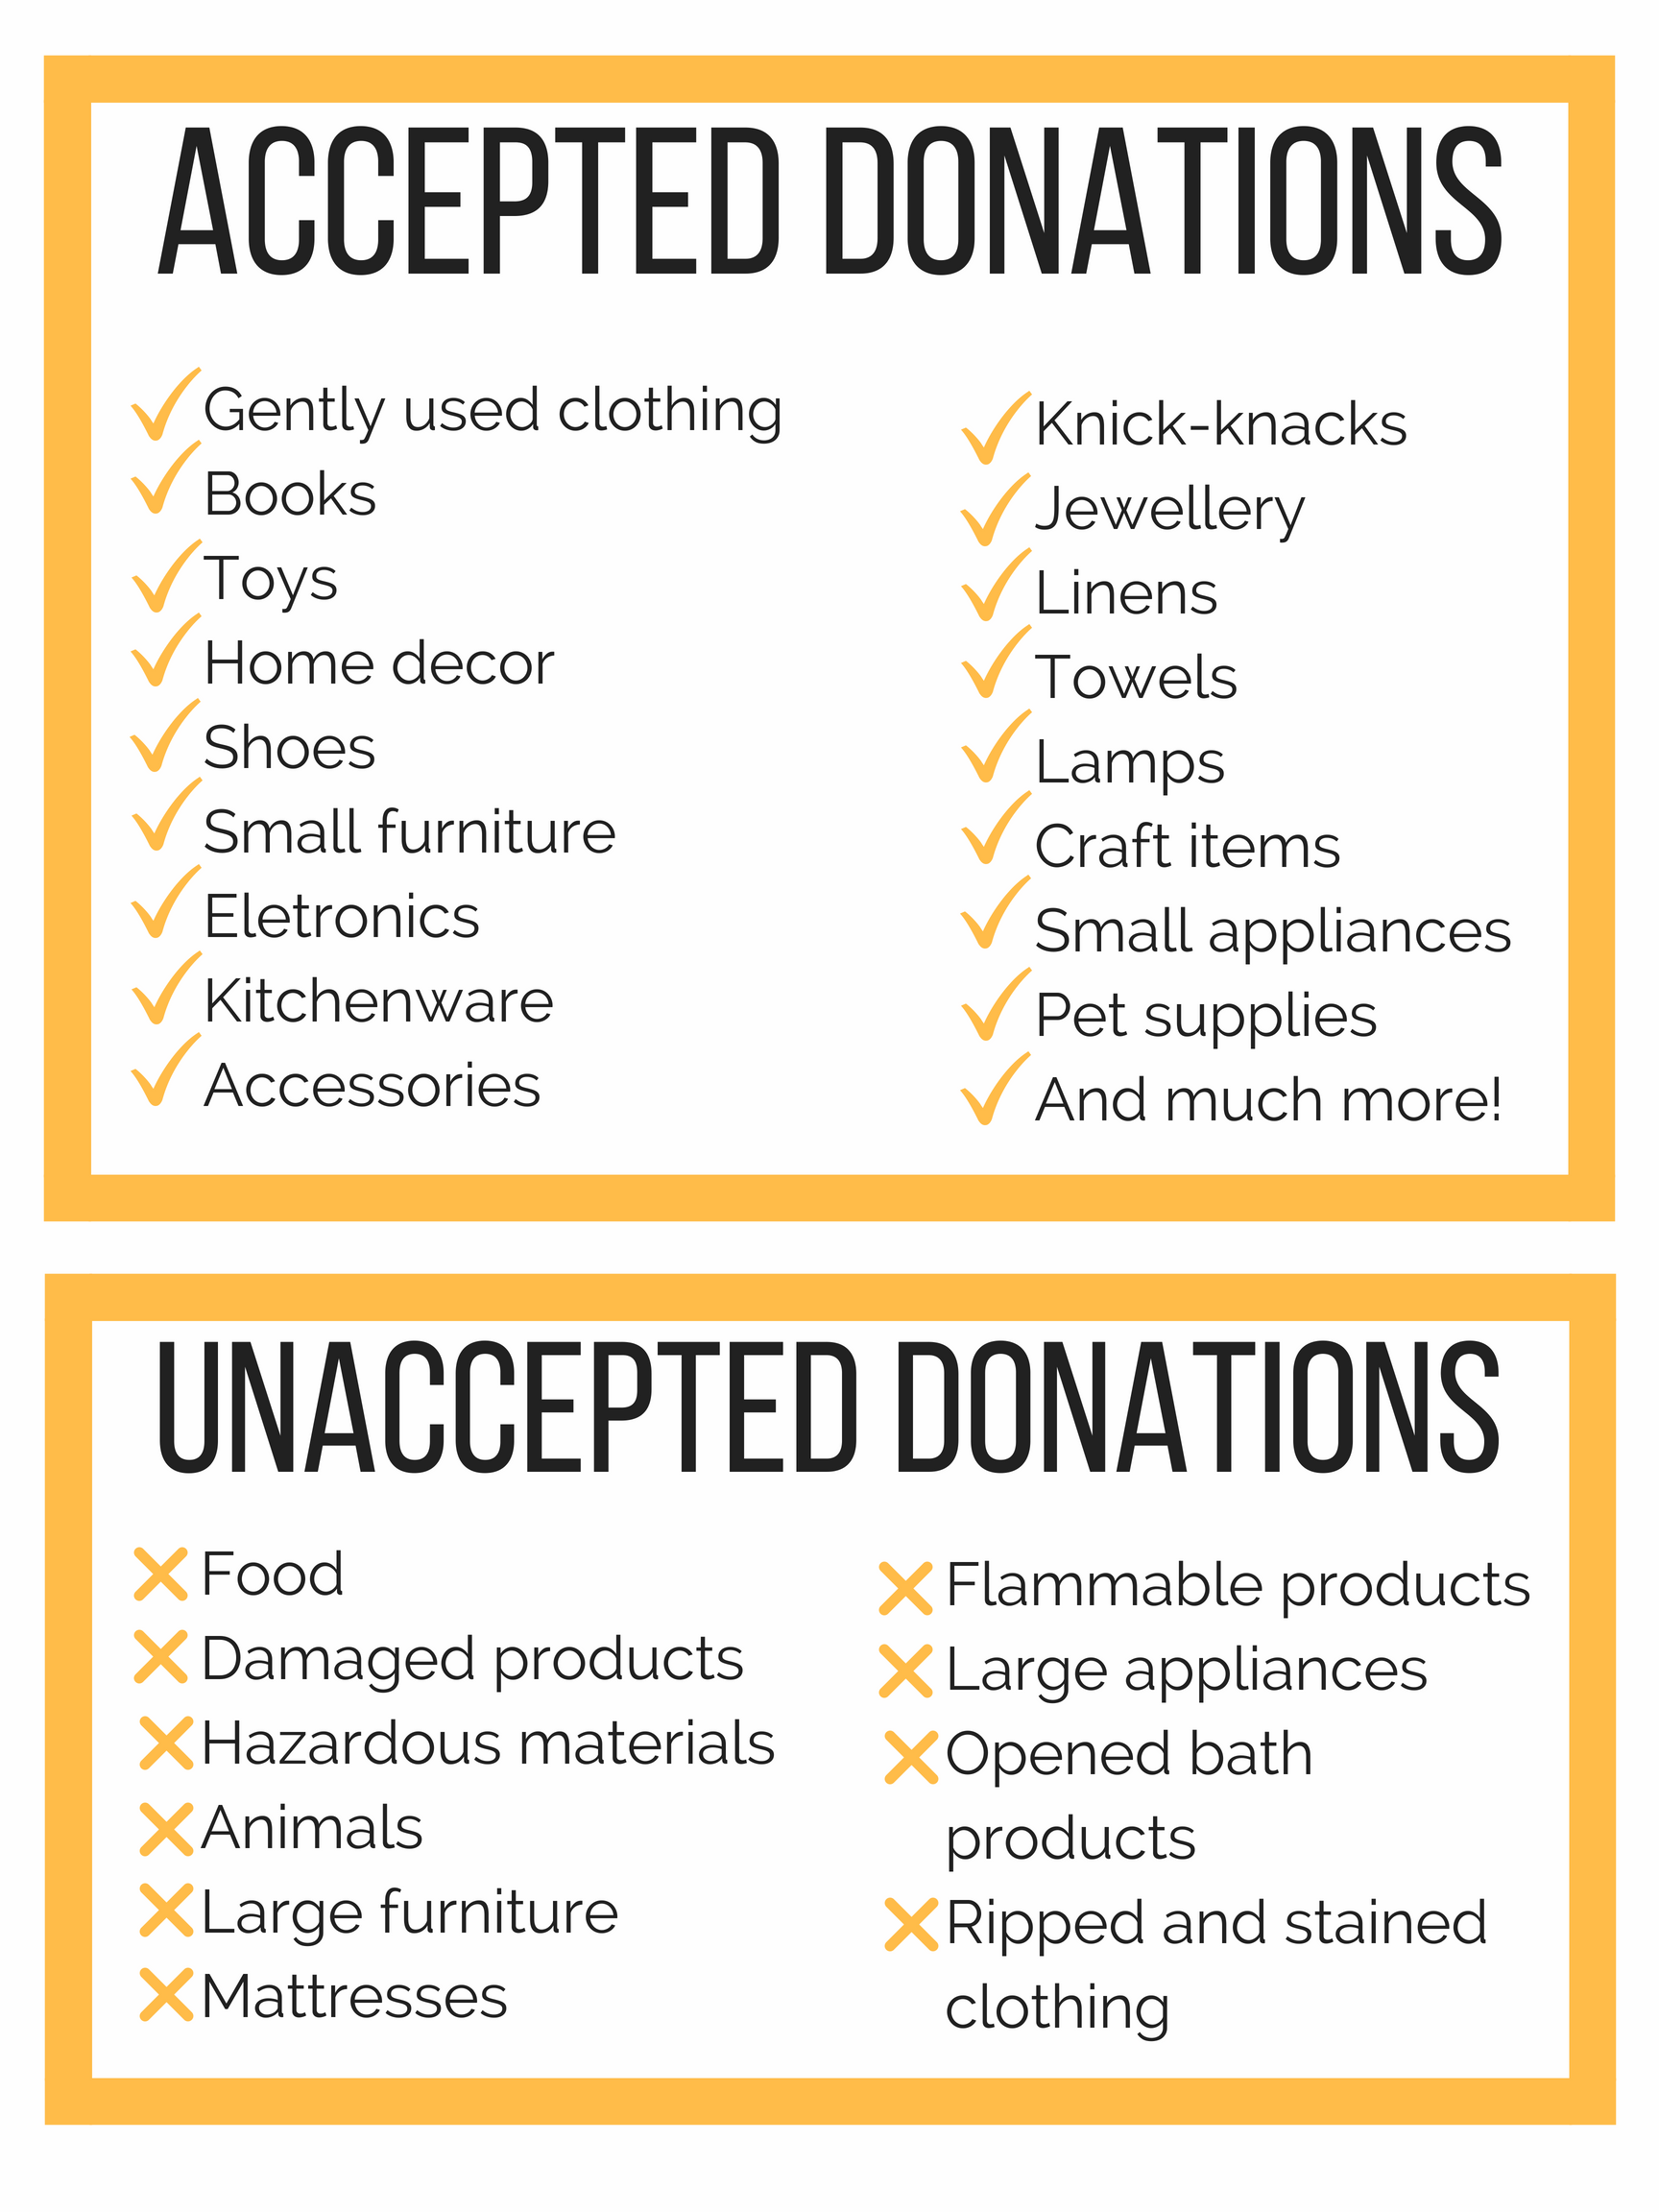 Accepted & unaccepted donations